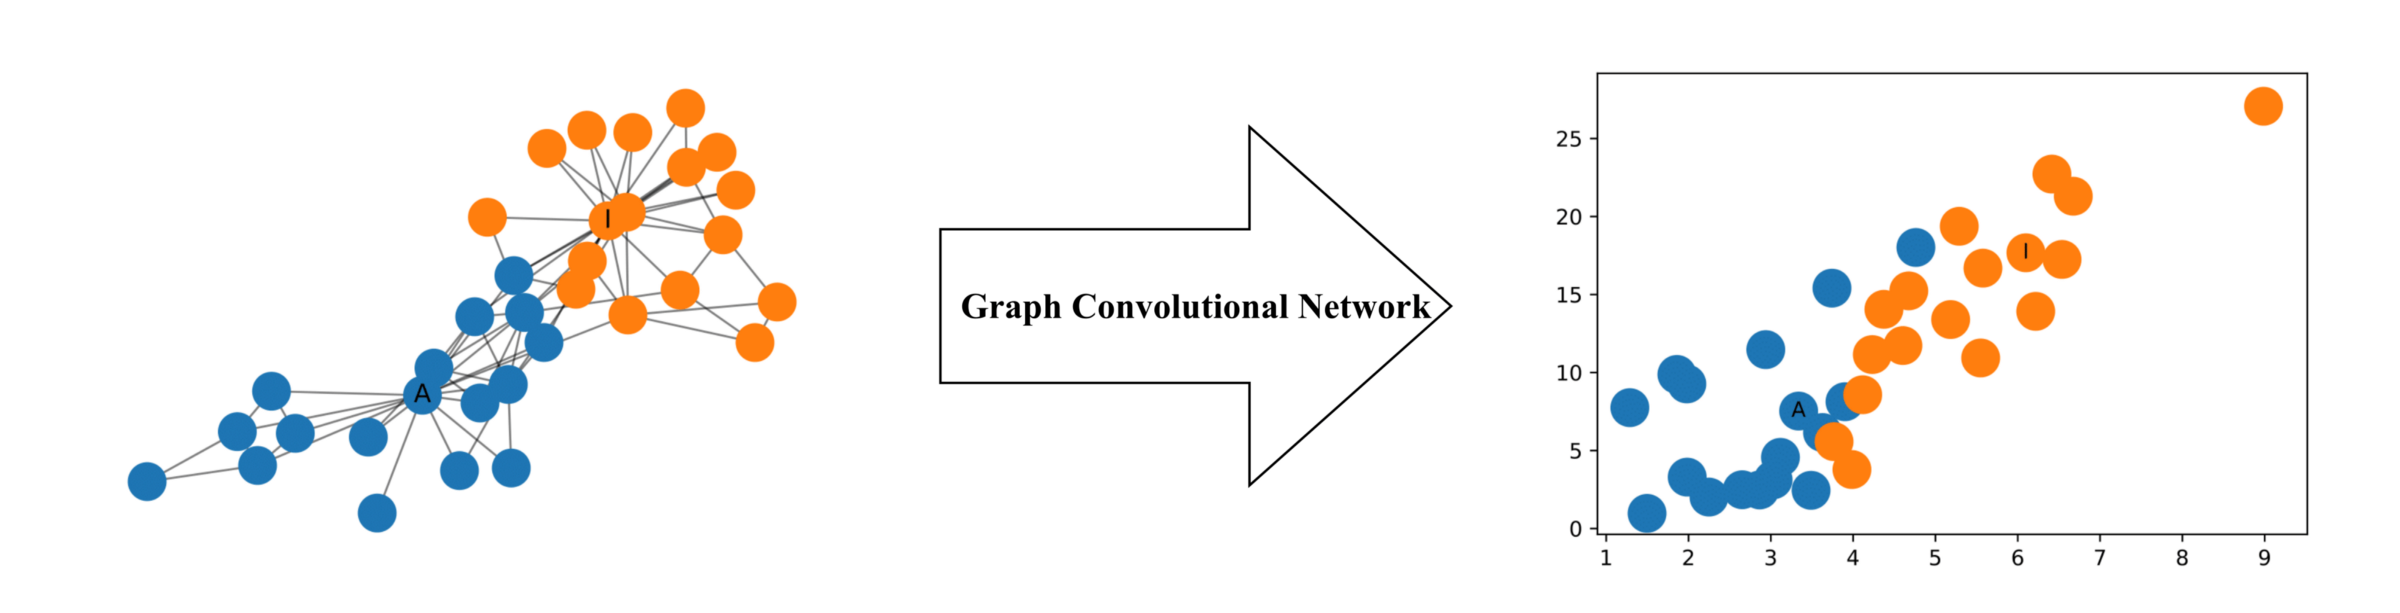 How to do Deep Learning on Graphs with Graph Convolutional Networks